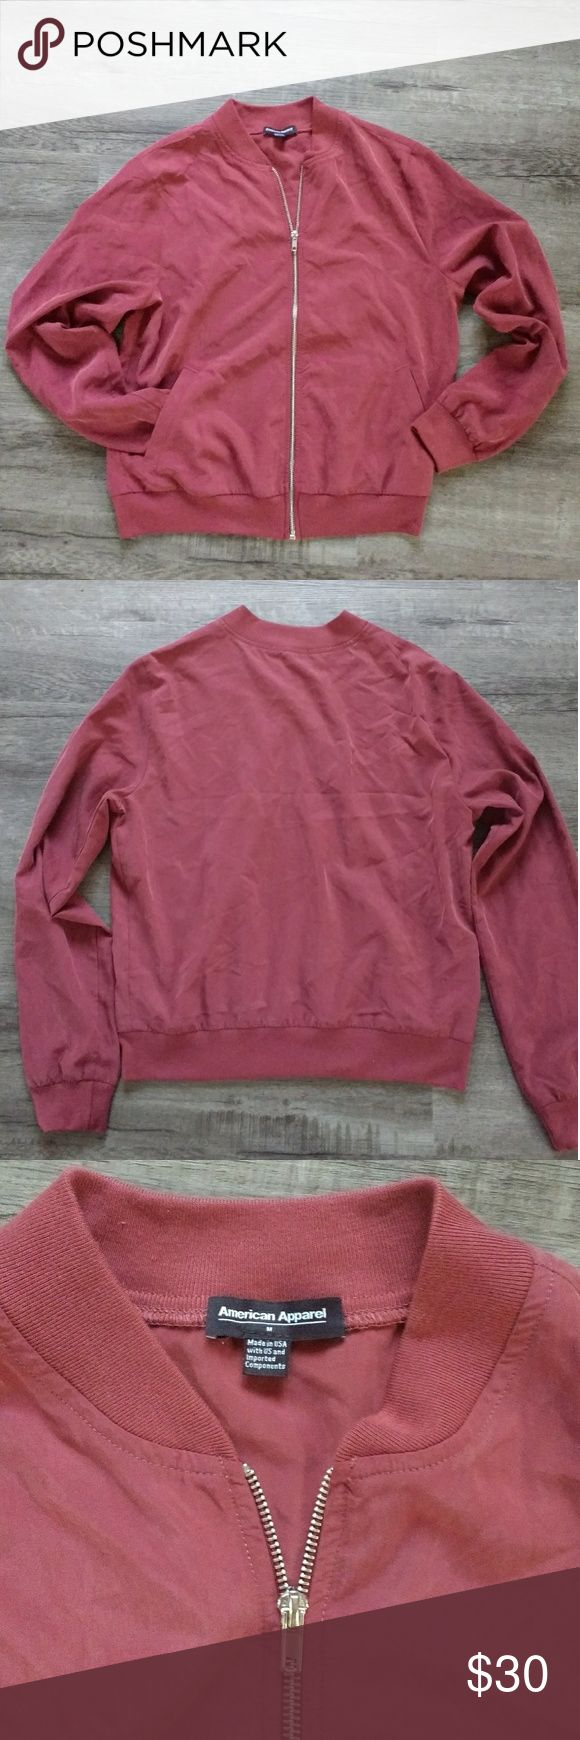 American Apparel Zip-Up Top Uber soft and in good used condition, this lightweight zip-up jacket is ready to make your spring wardrobe pop.  It's a bomber jacket cut with super light 72% modal and 28% polyester fabric.  DRY CLEAN ONLY American Apparel Jackets & Coats